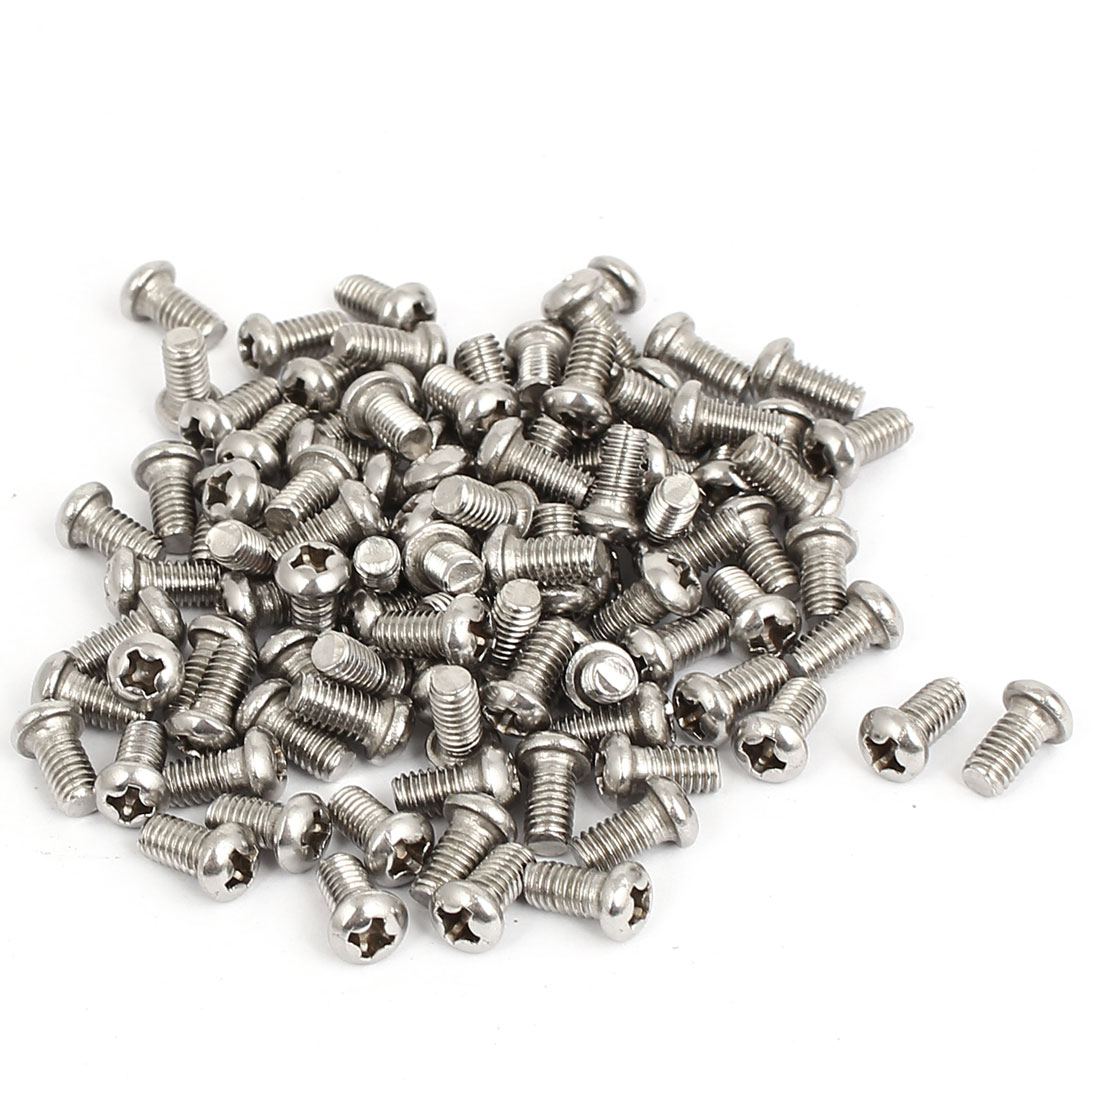 M4x8mm Stainless Steel Phillips Round Pan Head Machine Screws 100pcs